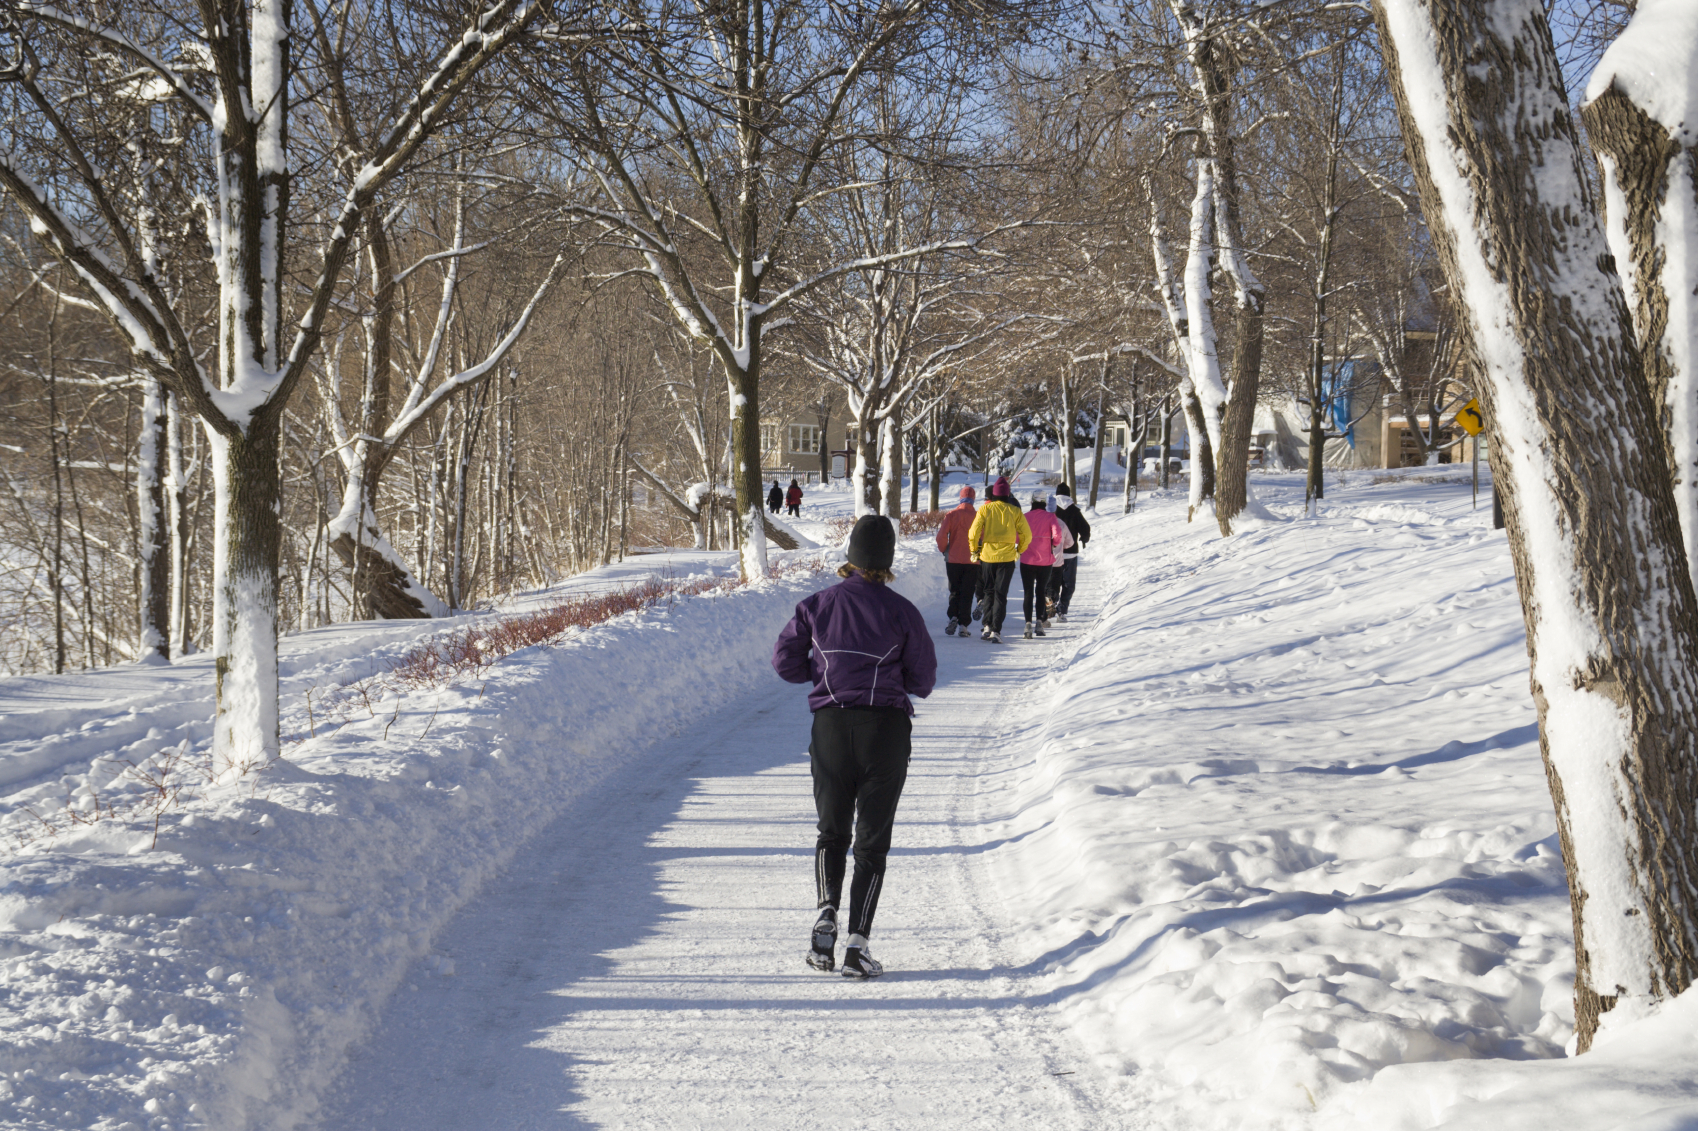 5 Motivations To Stay Active This Winter